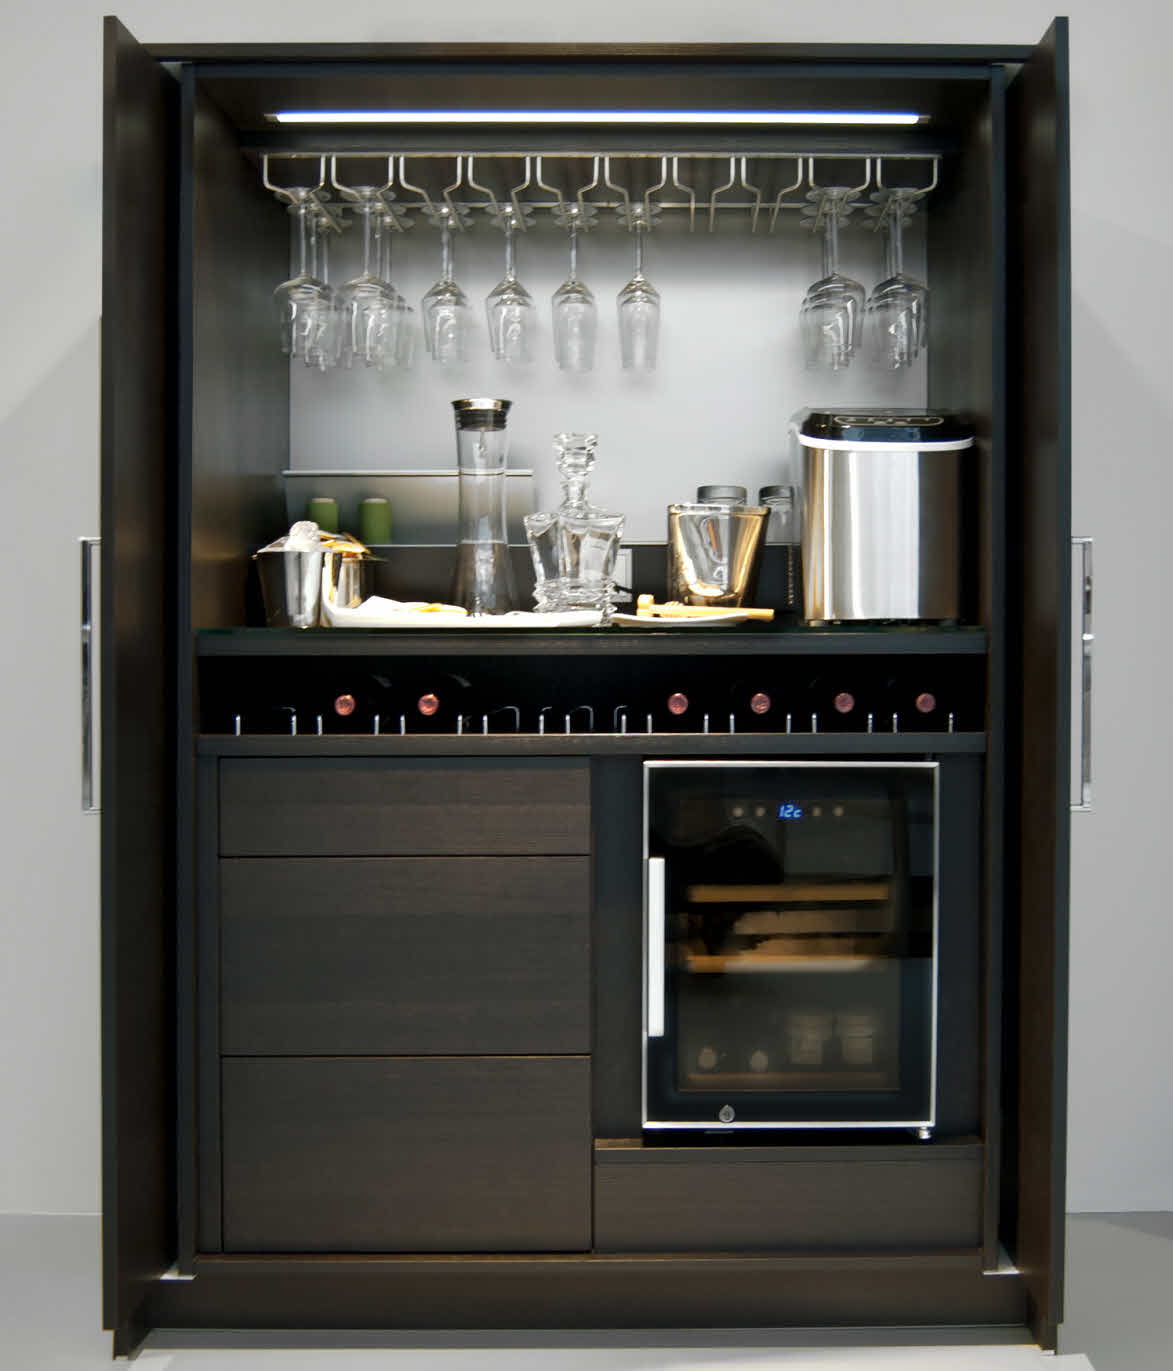 Disenos y decoracion de minibar en casa 21 curso de for Built in drinks cabinet